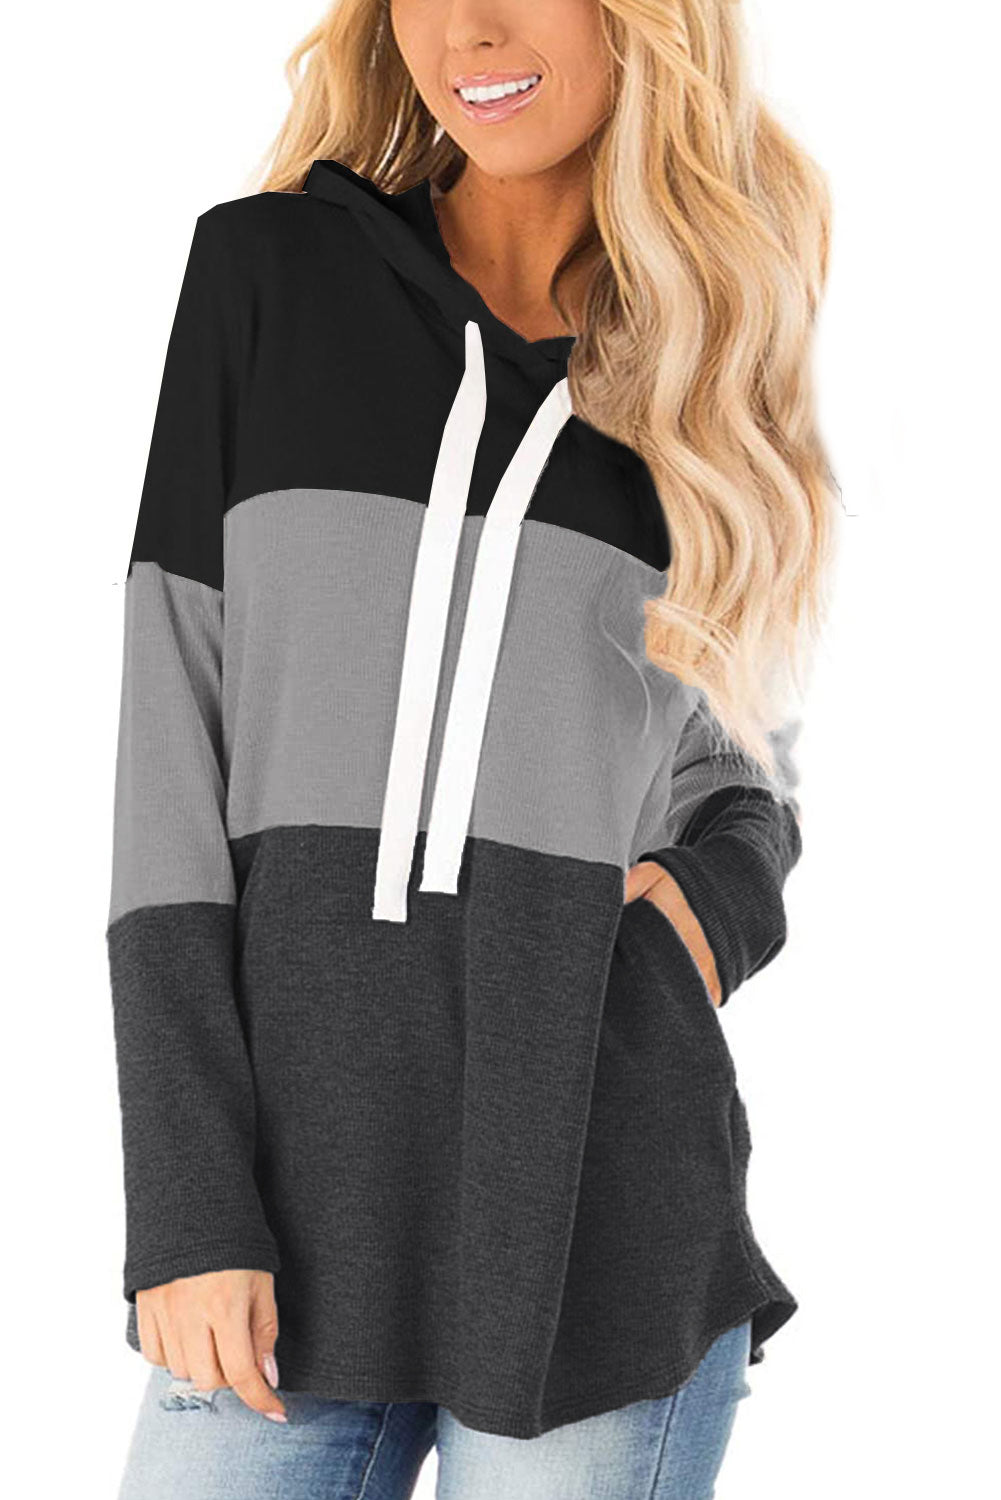 Black Color Block Long Sleeve Drawstring Hoodie Sweatshirts & Hoodies Discount Designer Fashion Clothes Shoes Bags Women Men Kids Children Black Owned Business